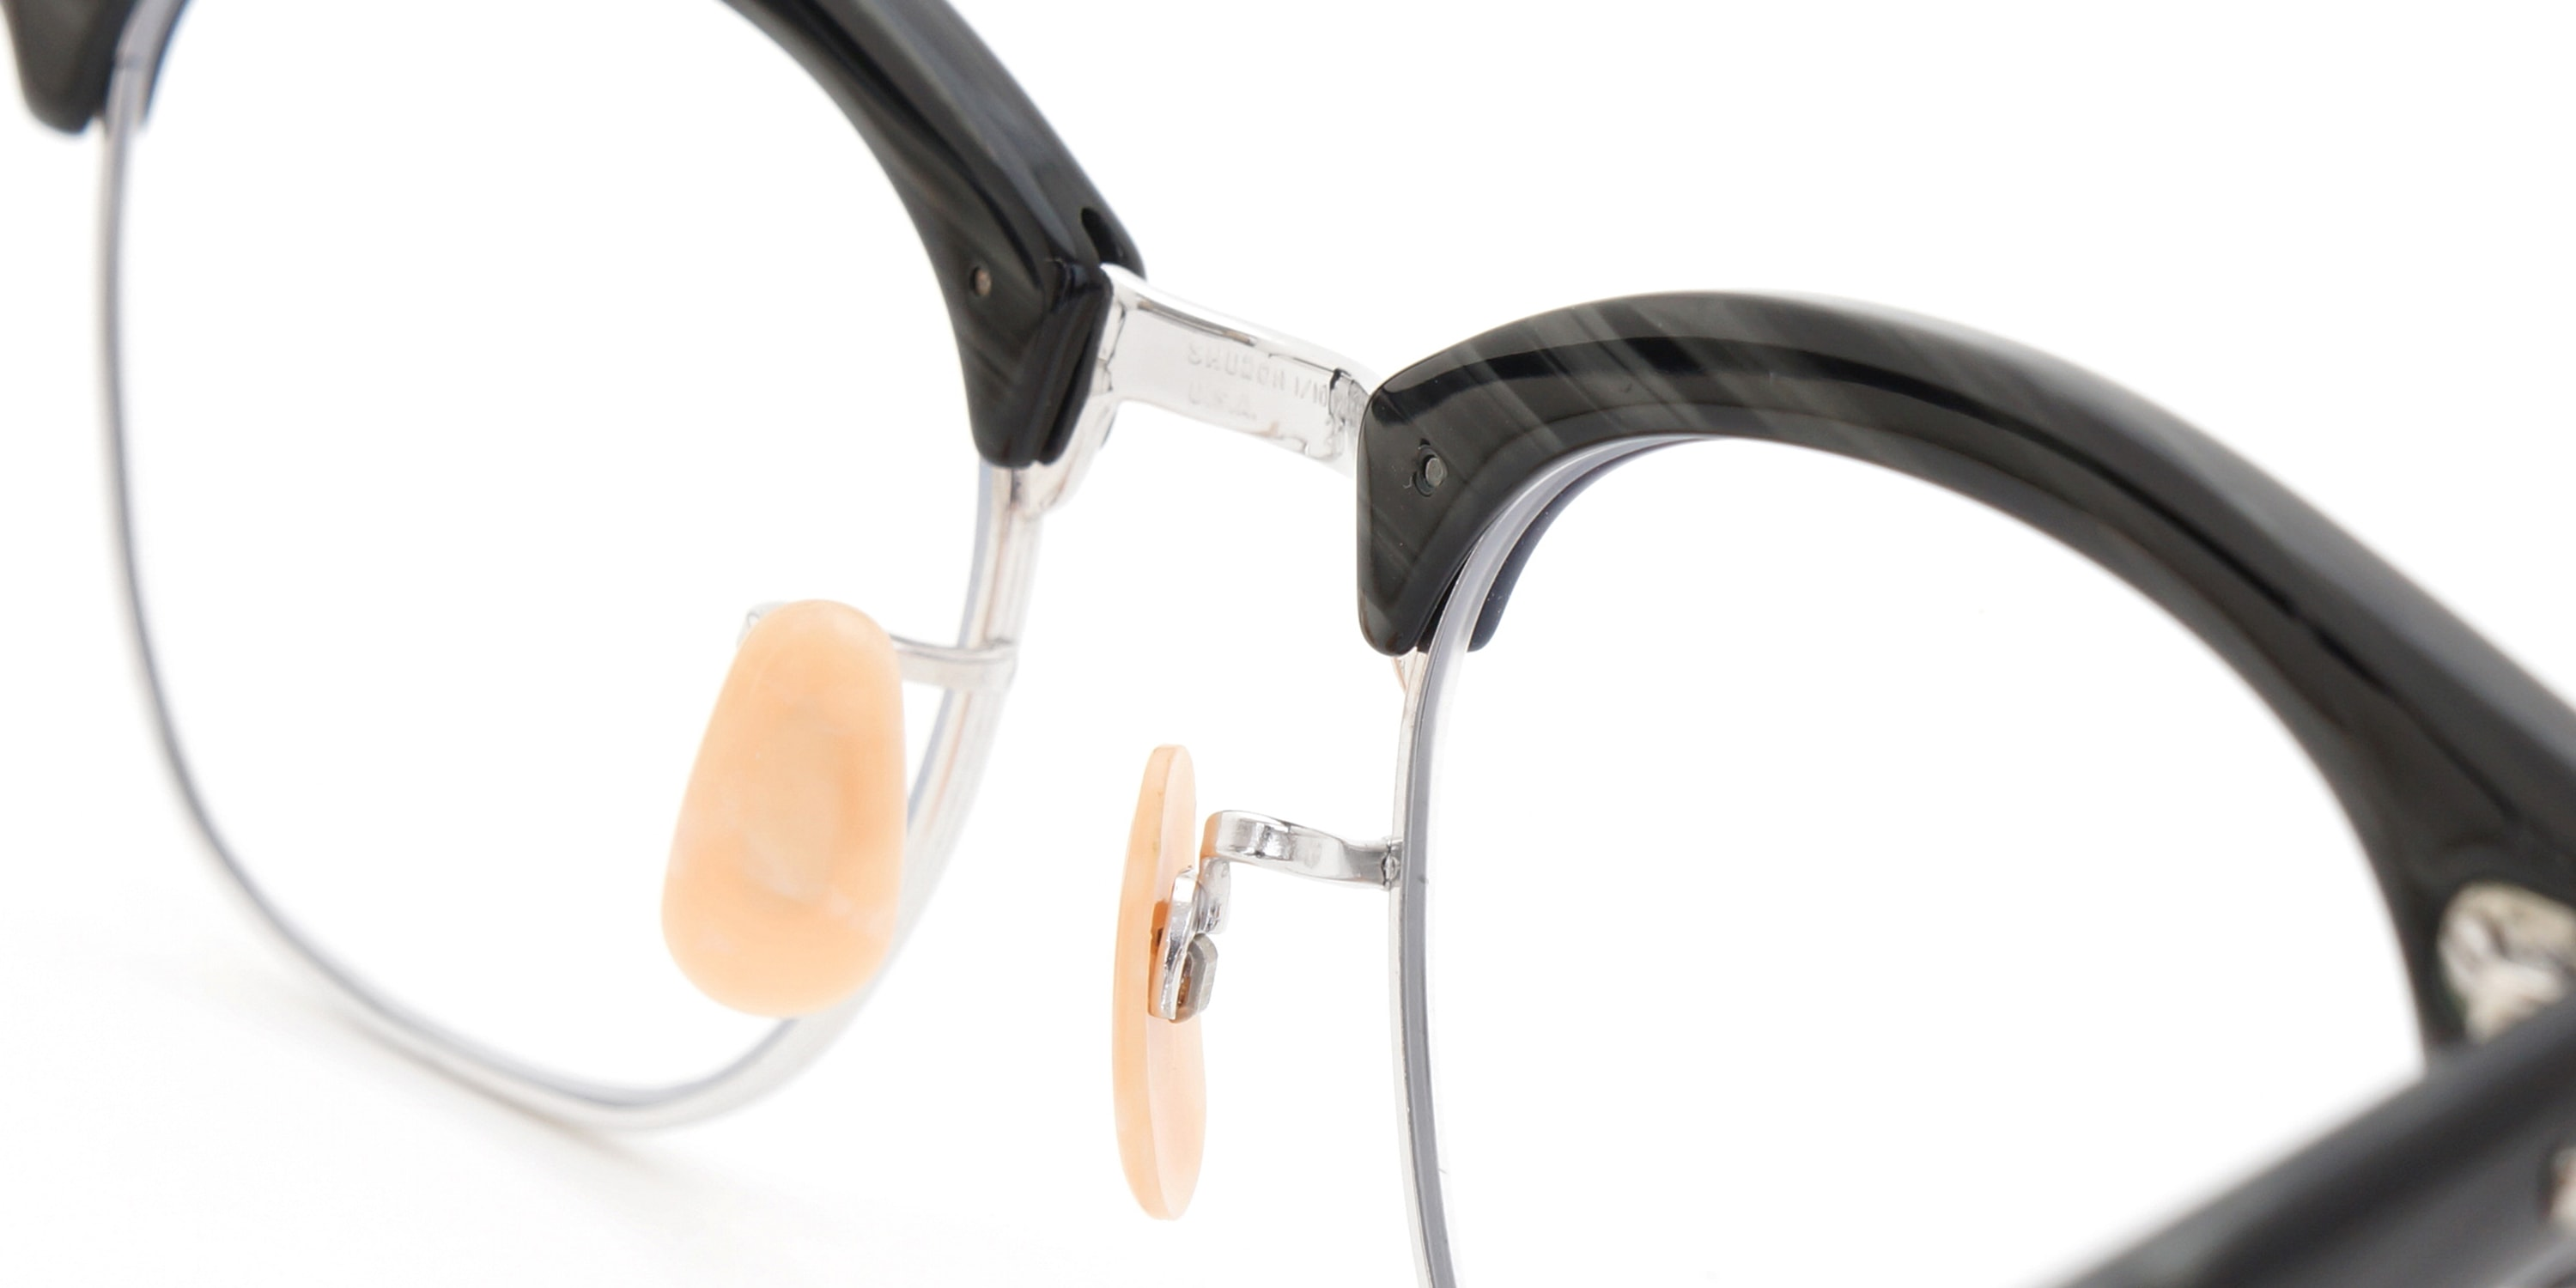 The Spectacle メガネ 1950s-1960s SHURON RONSIR Black-Stone WG 1/10 12KGF 46/20 イメージ10